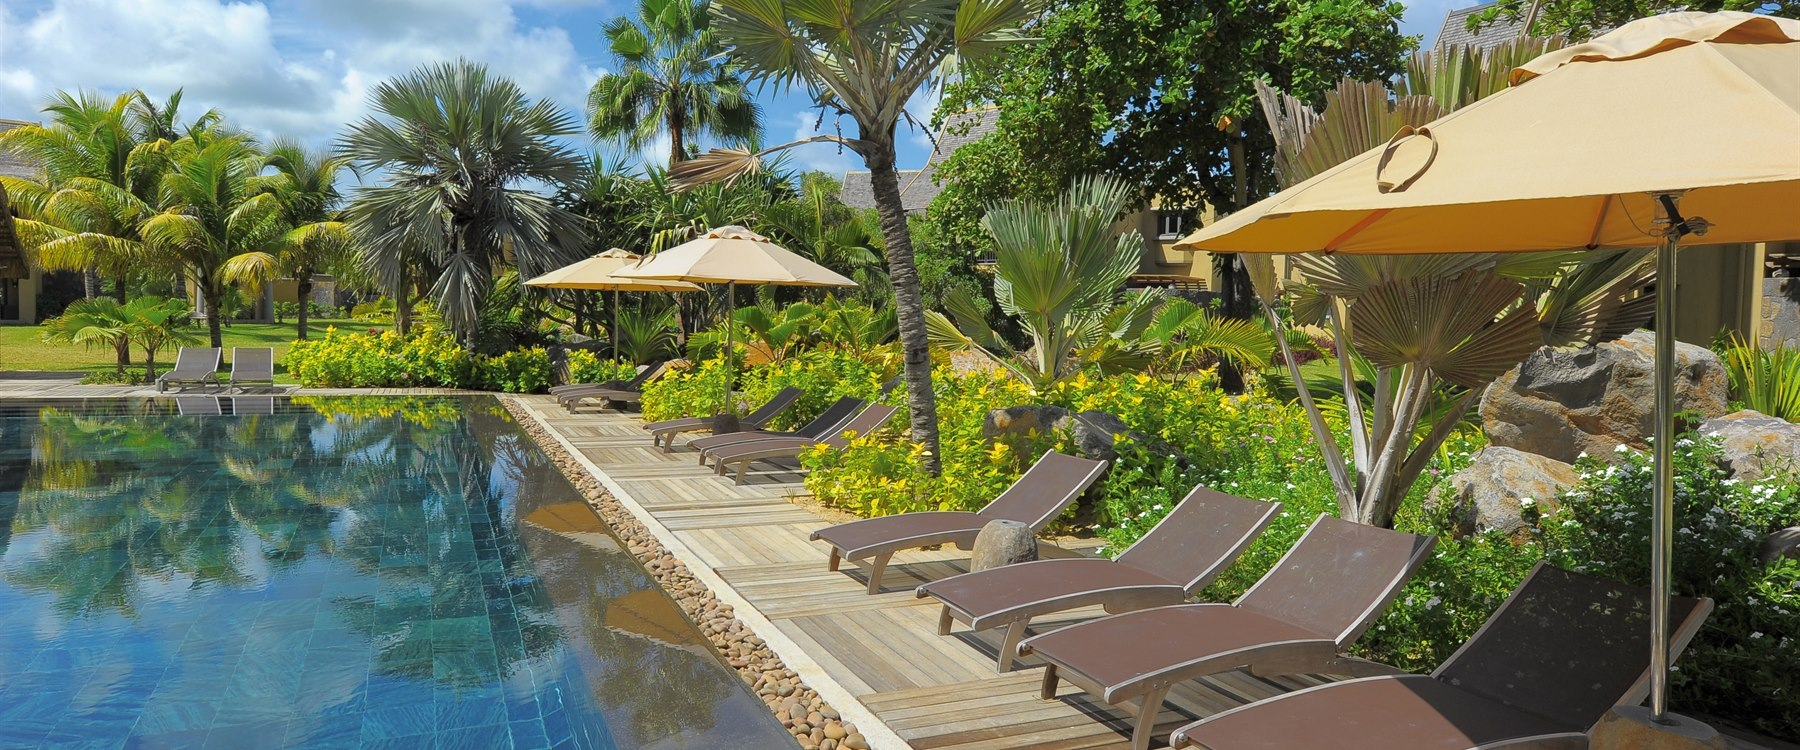 Swimming pool at Trou Aux Biches Beachcomber Golf Resort & Spa, Mauritius